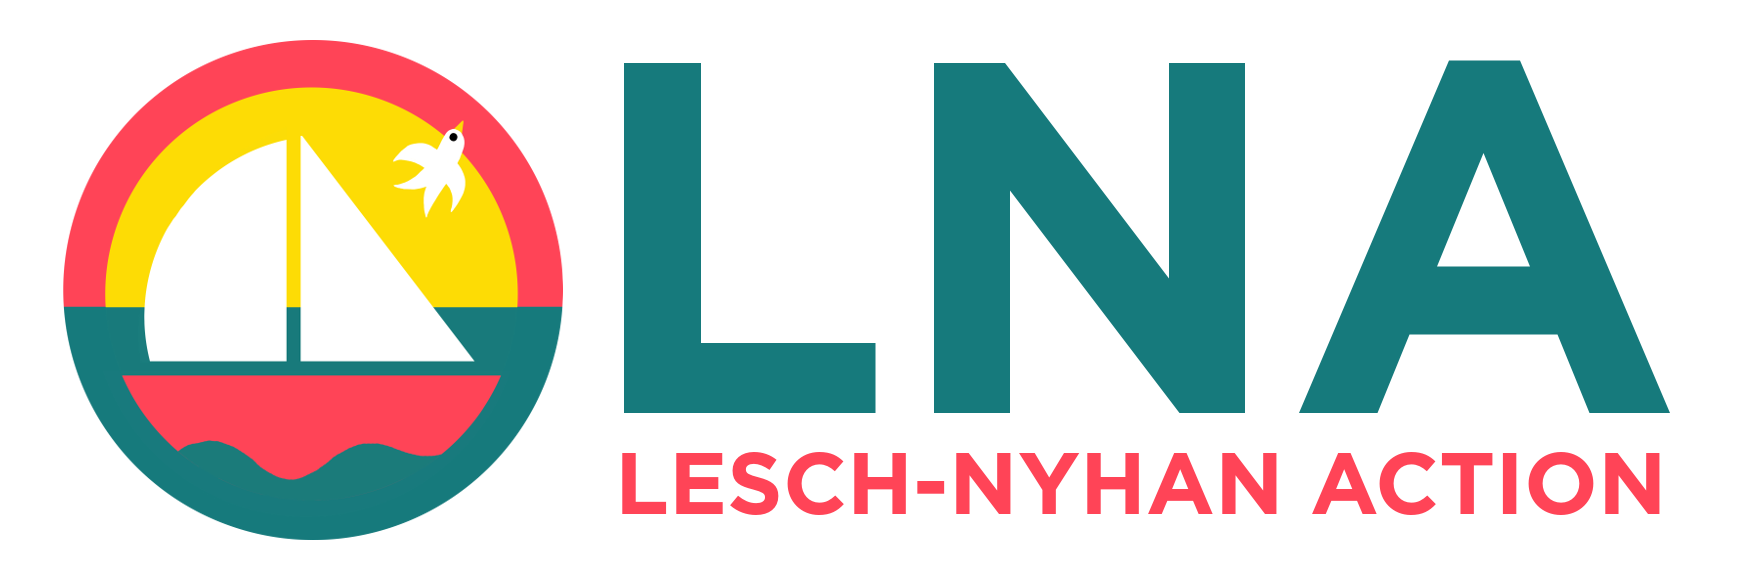 Association Lesch-Nyhan Action (LNA) - FRANCE